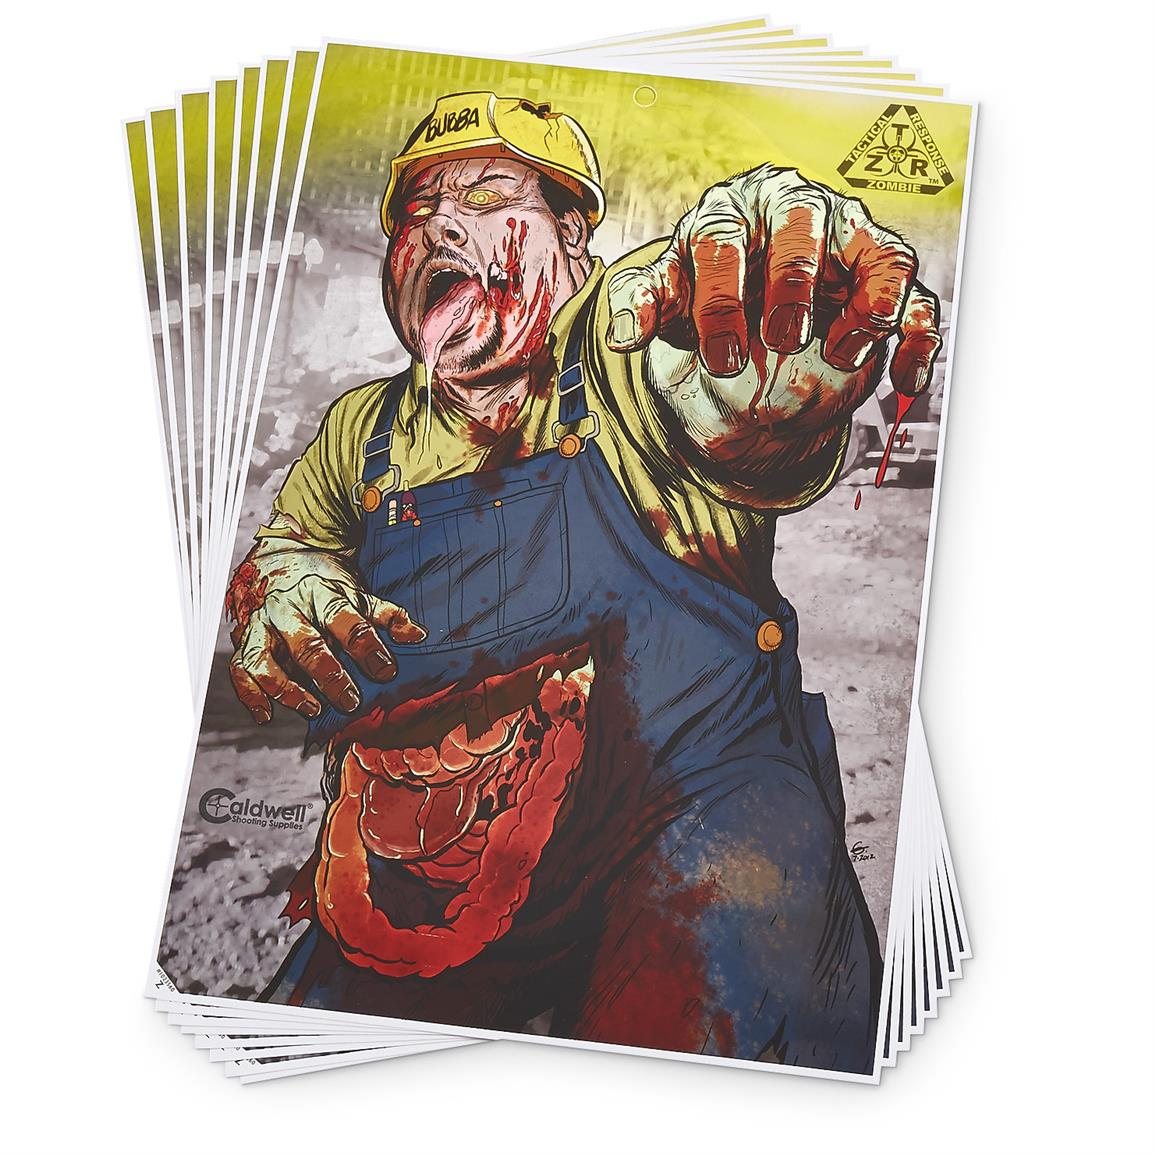 8-Pk. of Zombie Pure Evil Flake-Off Targets